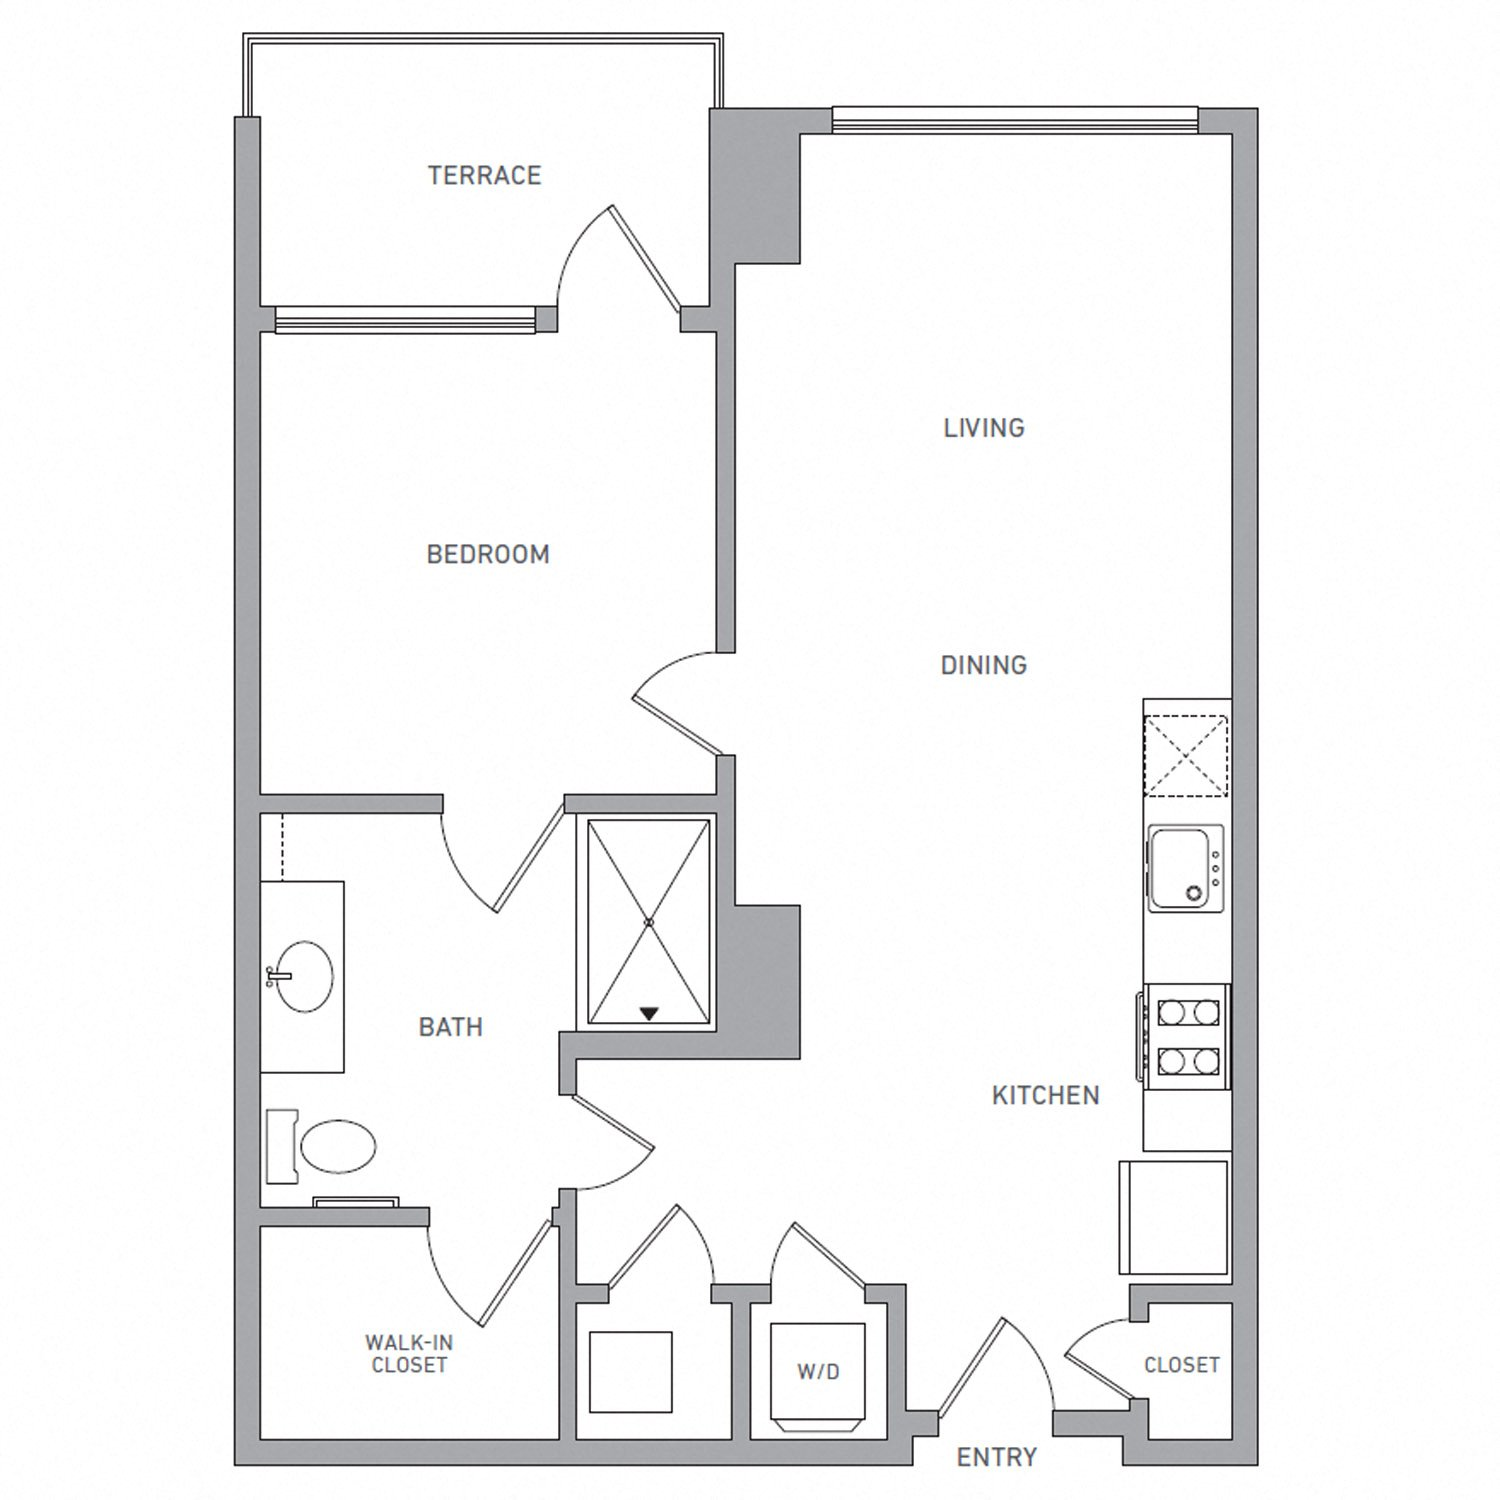 A Six C floor plan diagram. One bedroom, one bathroom, an open kitchen and living area, a terrace, and a washer dryer.